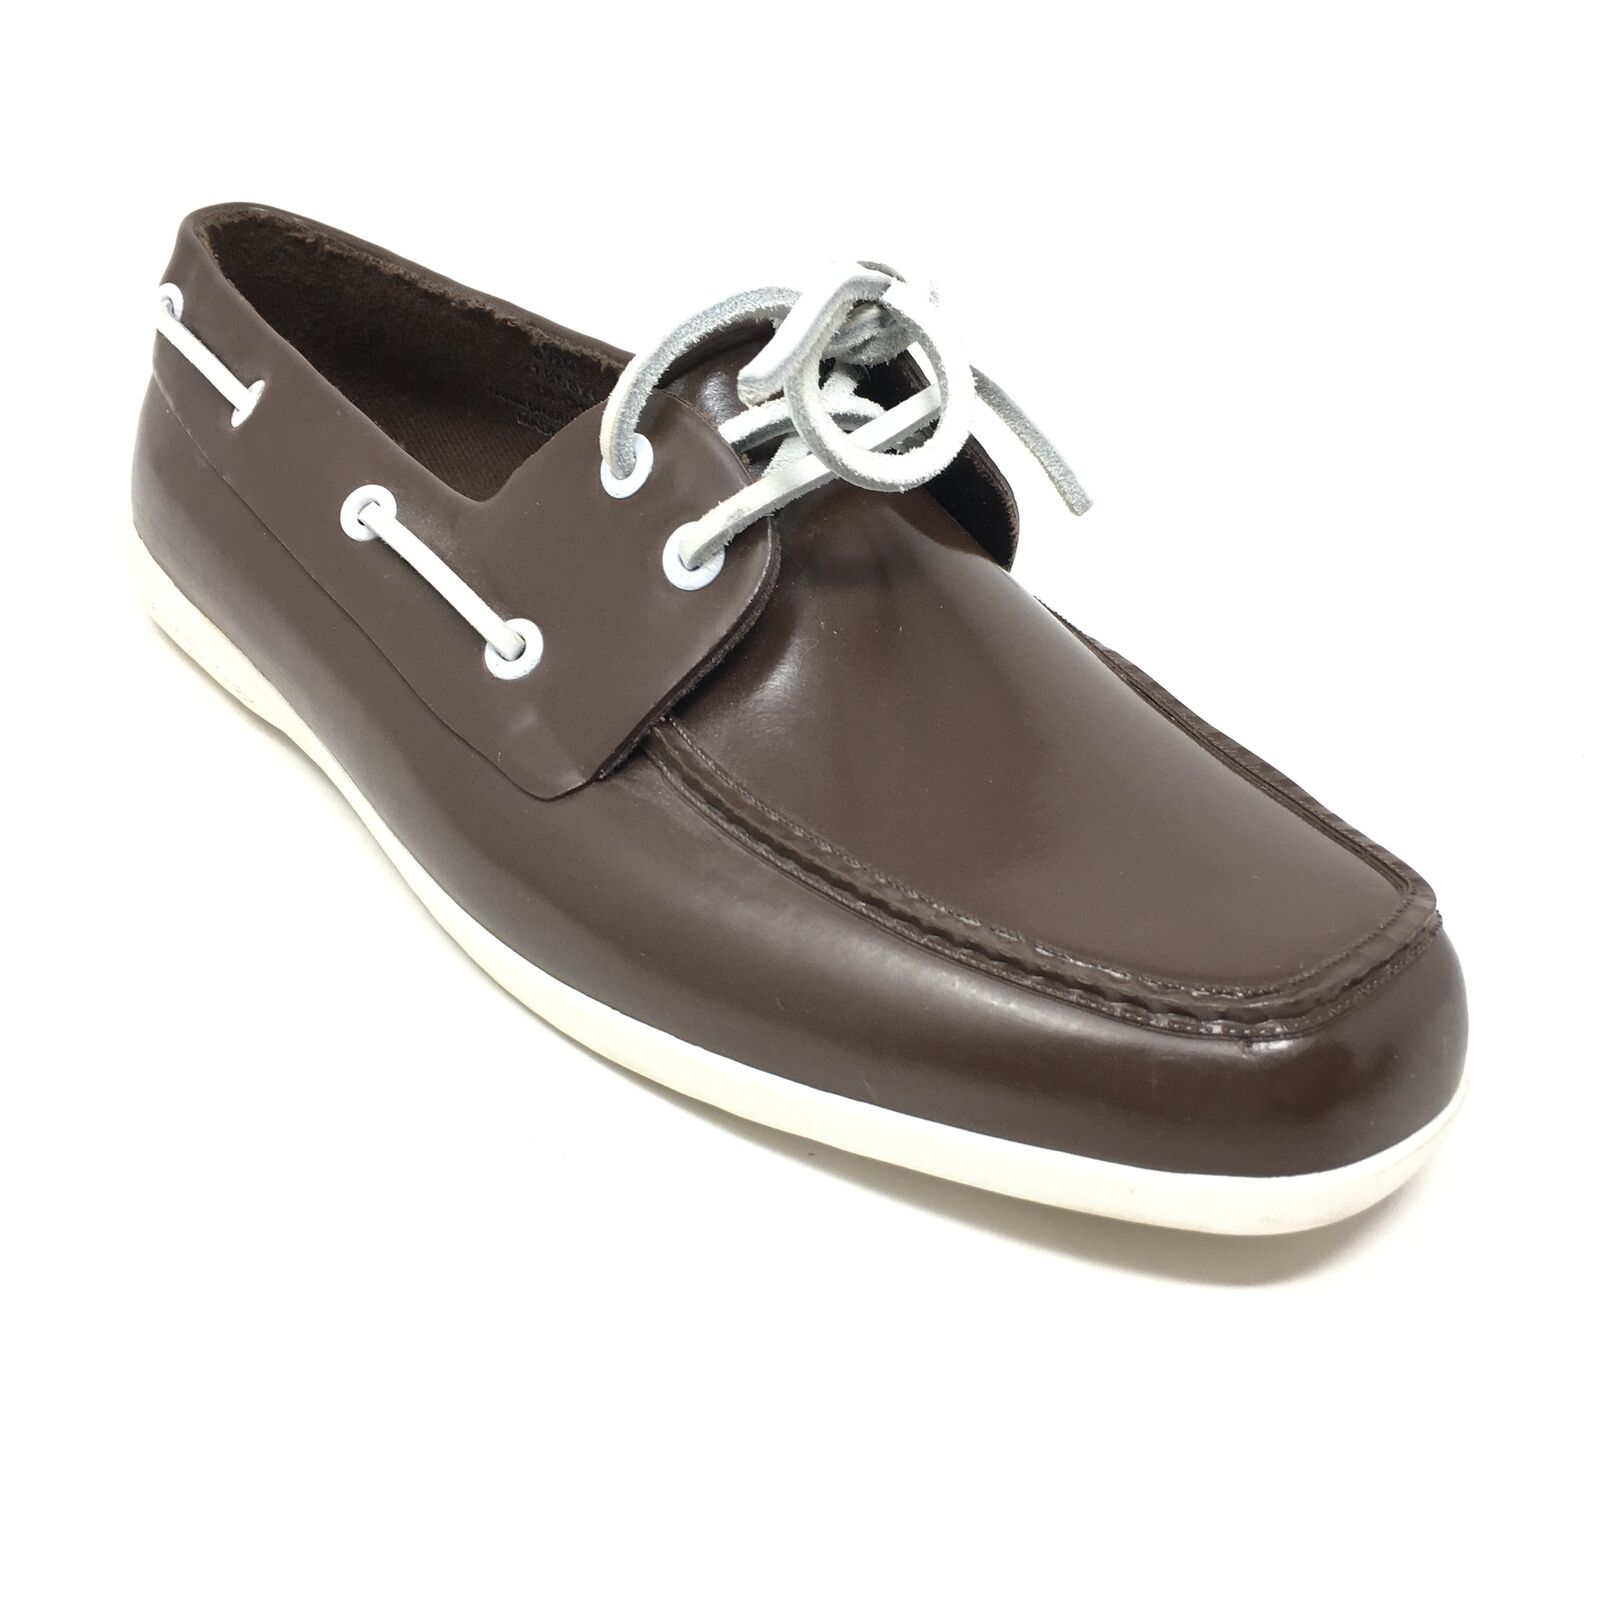 Women's Sperry Top-Sider Waterproof Boat Shoes Size 8.5 Brown Rubber Casual